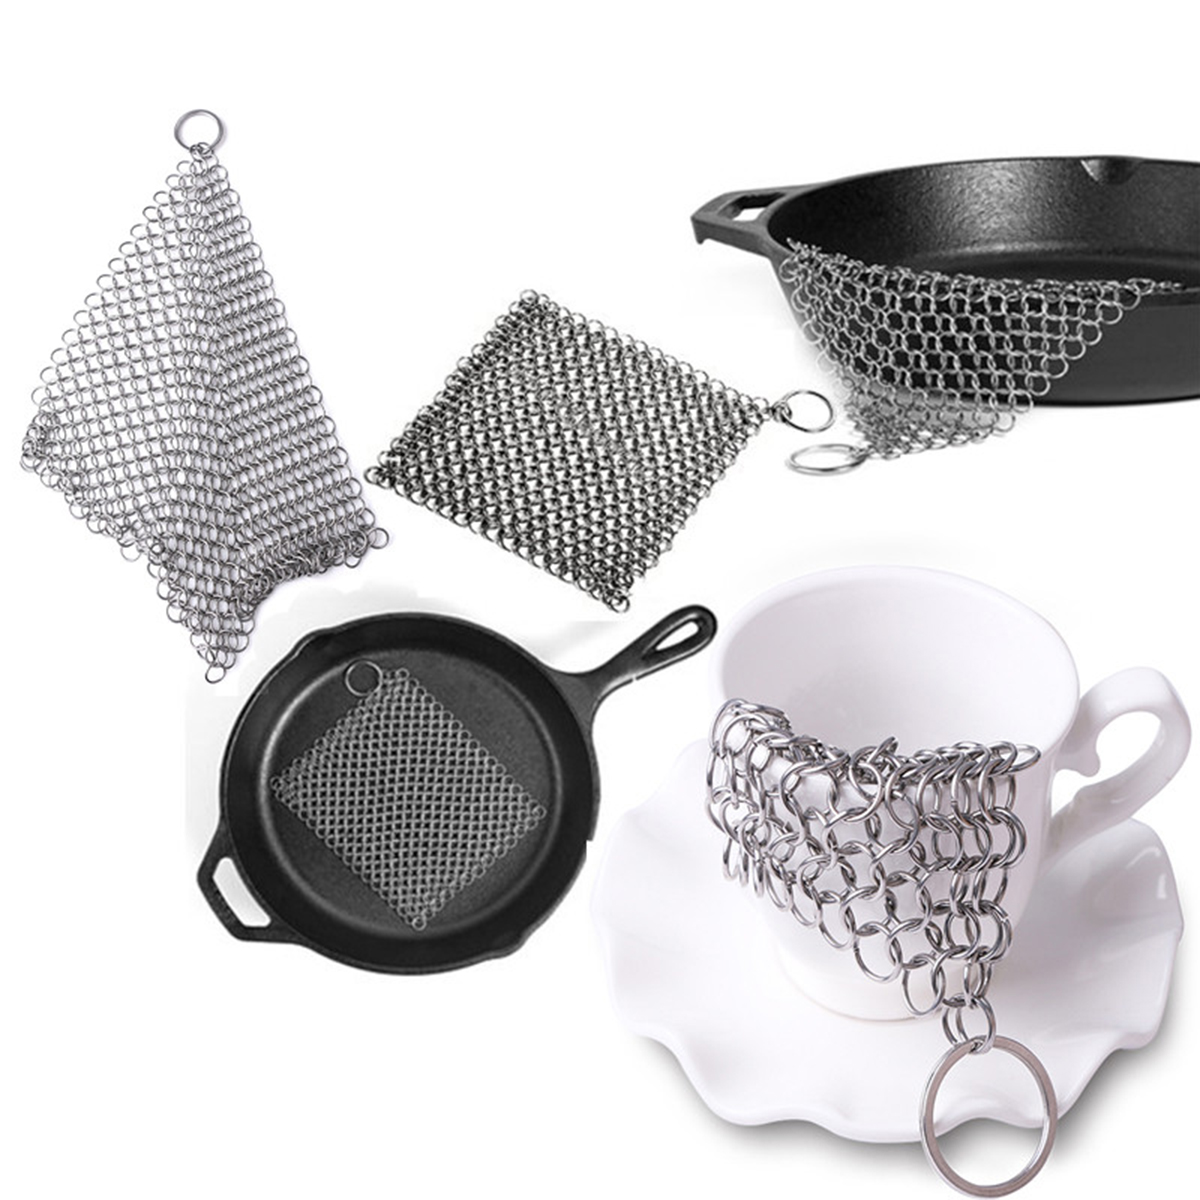 8 x 8 Inch Stainless Steel Cookware Cleaner Cast Iron Chainmail Scrubber Cleaner for Skillet,Pan,Griddle